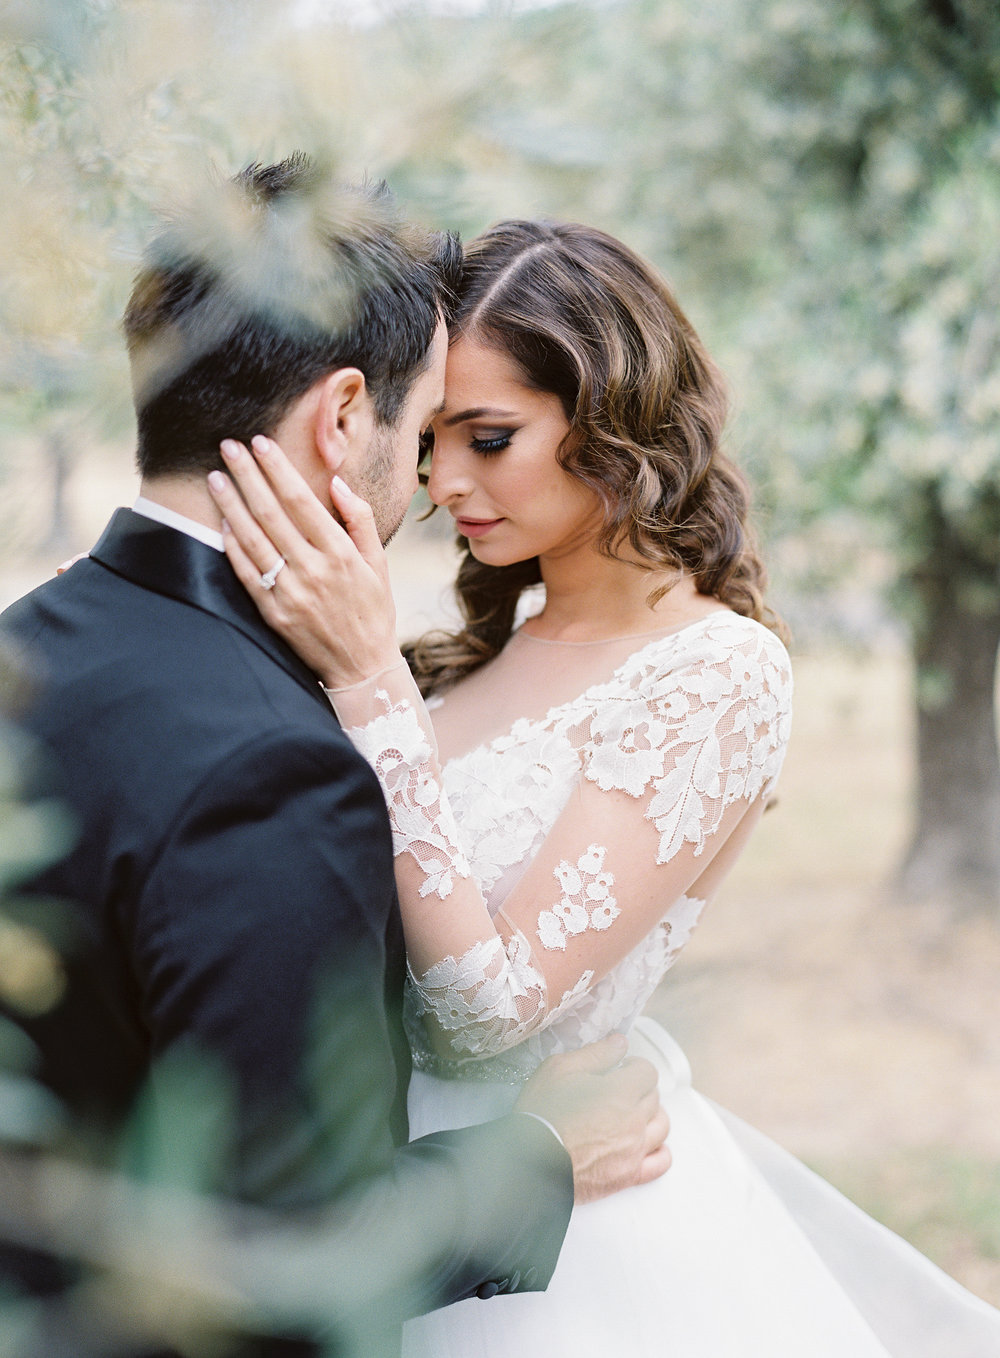 Meghan Mehan Photography | Fine Art Film Wedding Photographer | California | San Francisco | Napa | Sonoma | Santa Barbara | Big Sur | Destination Wedding Photographer 056.jpg